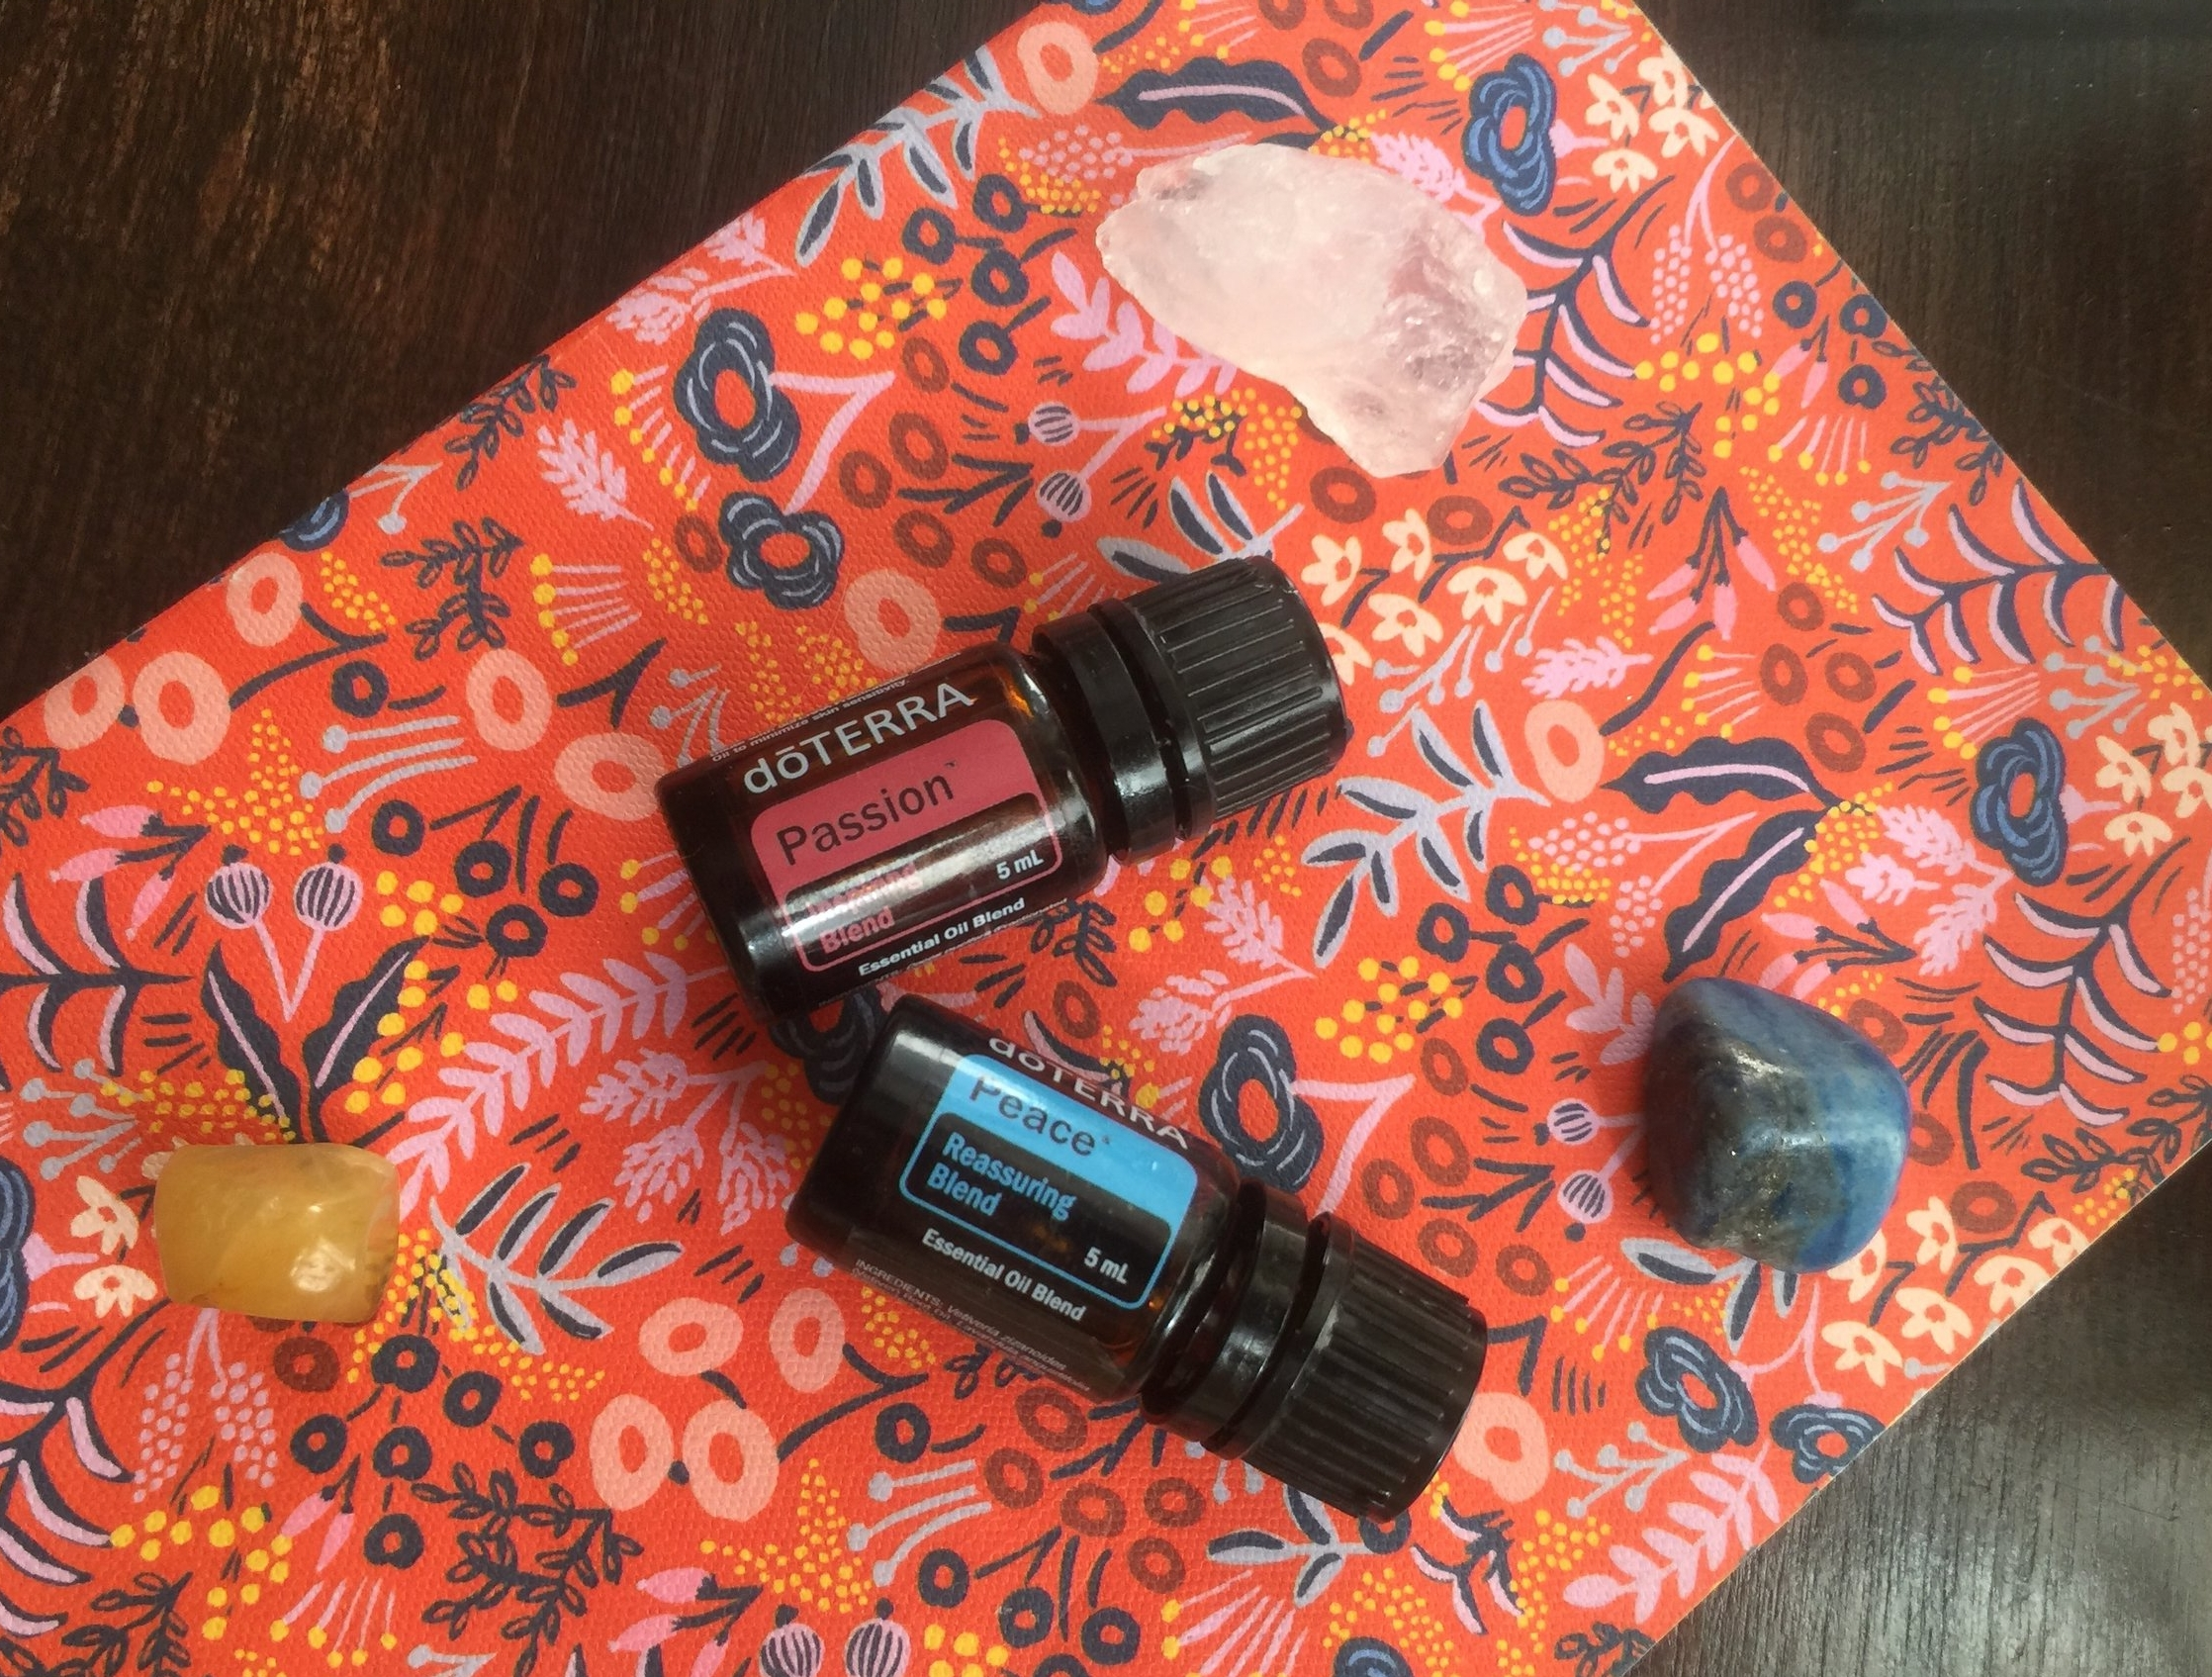 Pictured: Passion + Peace from the doTerra Emotional Aromatherapy System. Click to grab them from my own site! (Instructions on how to find them on the left.)